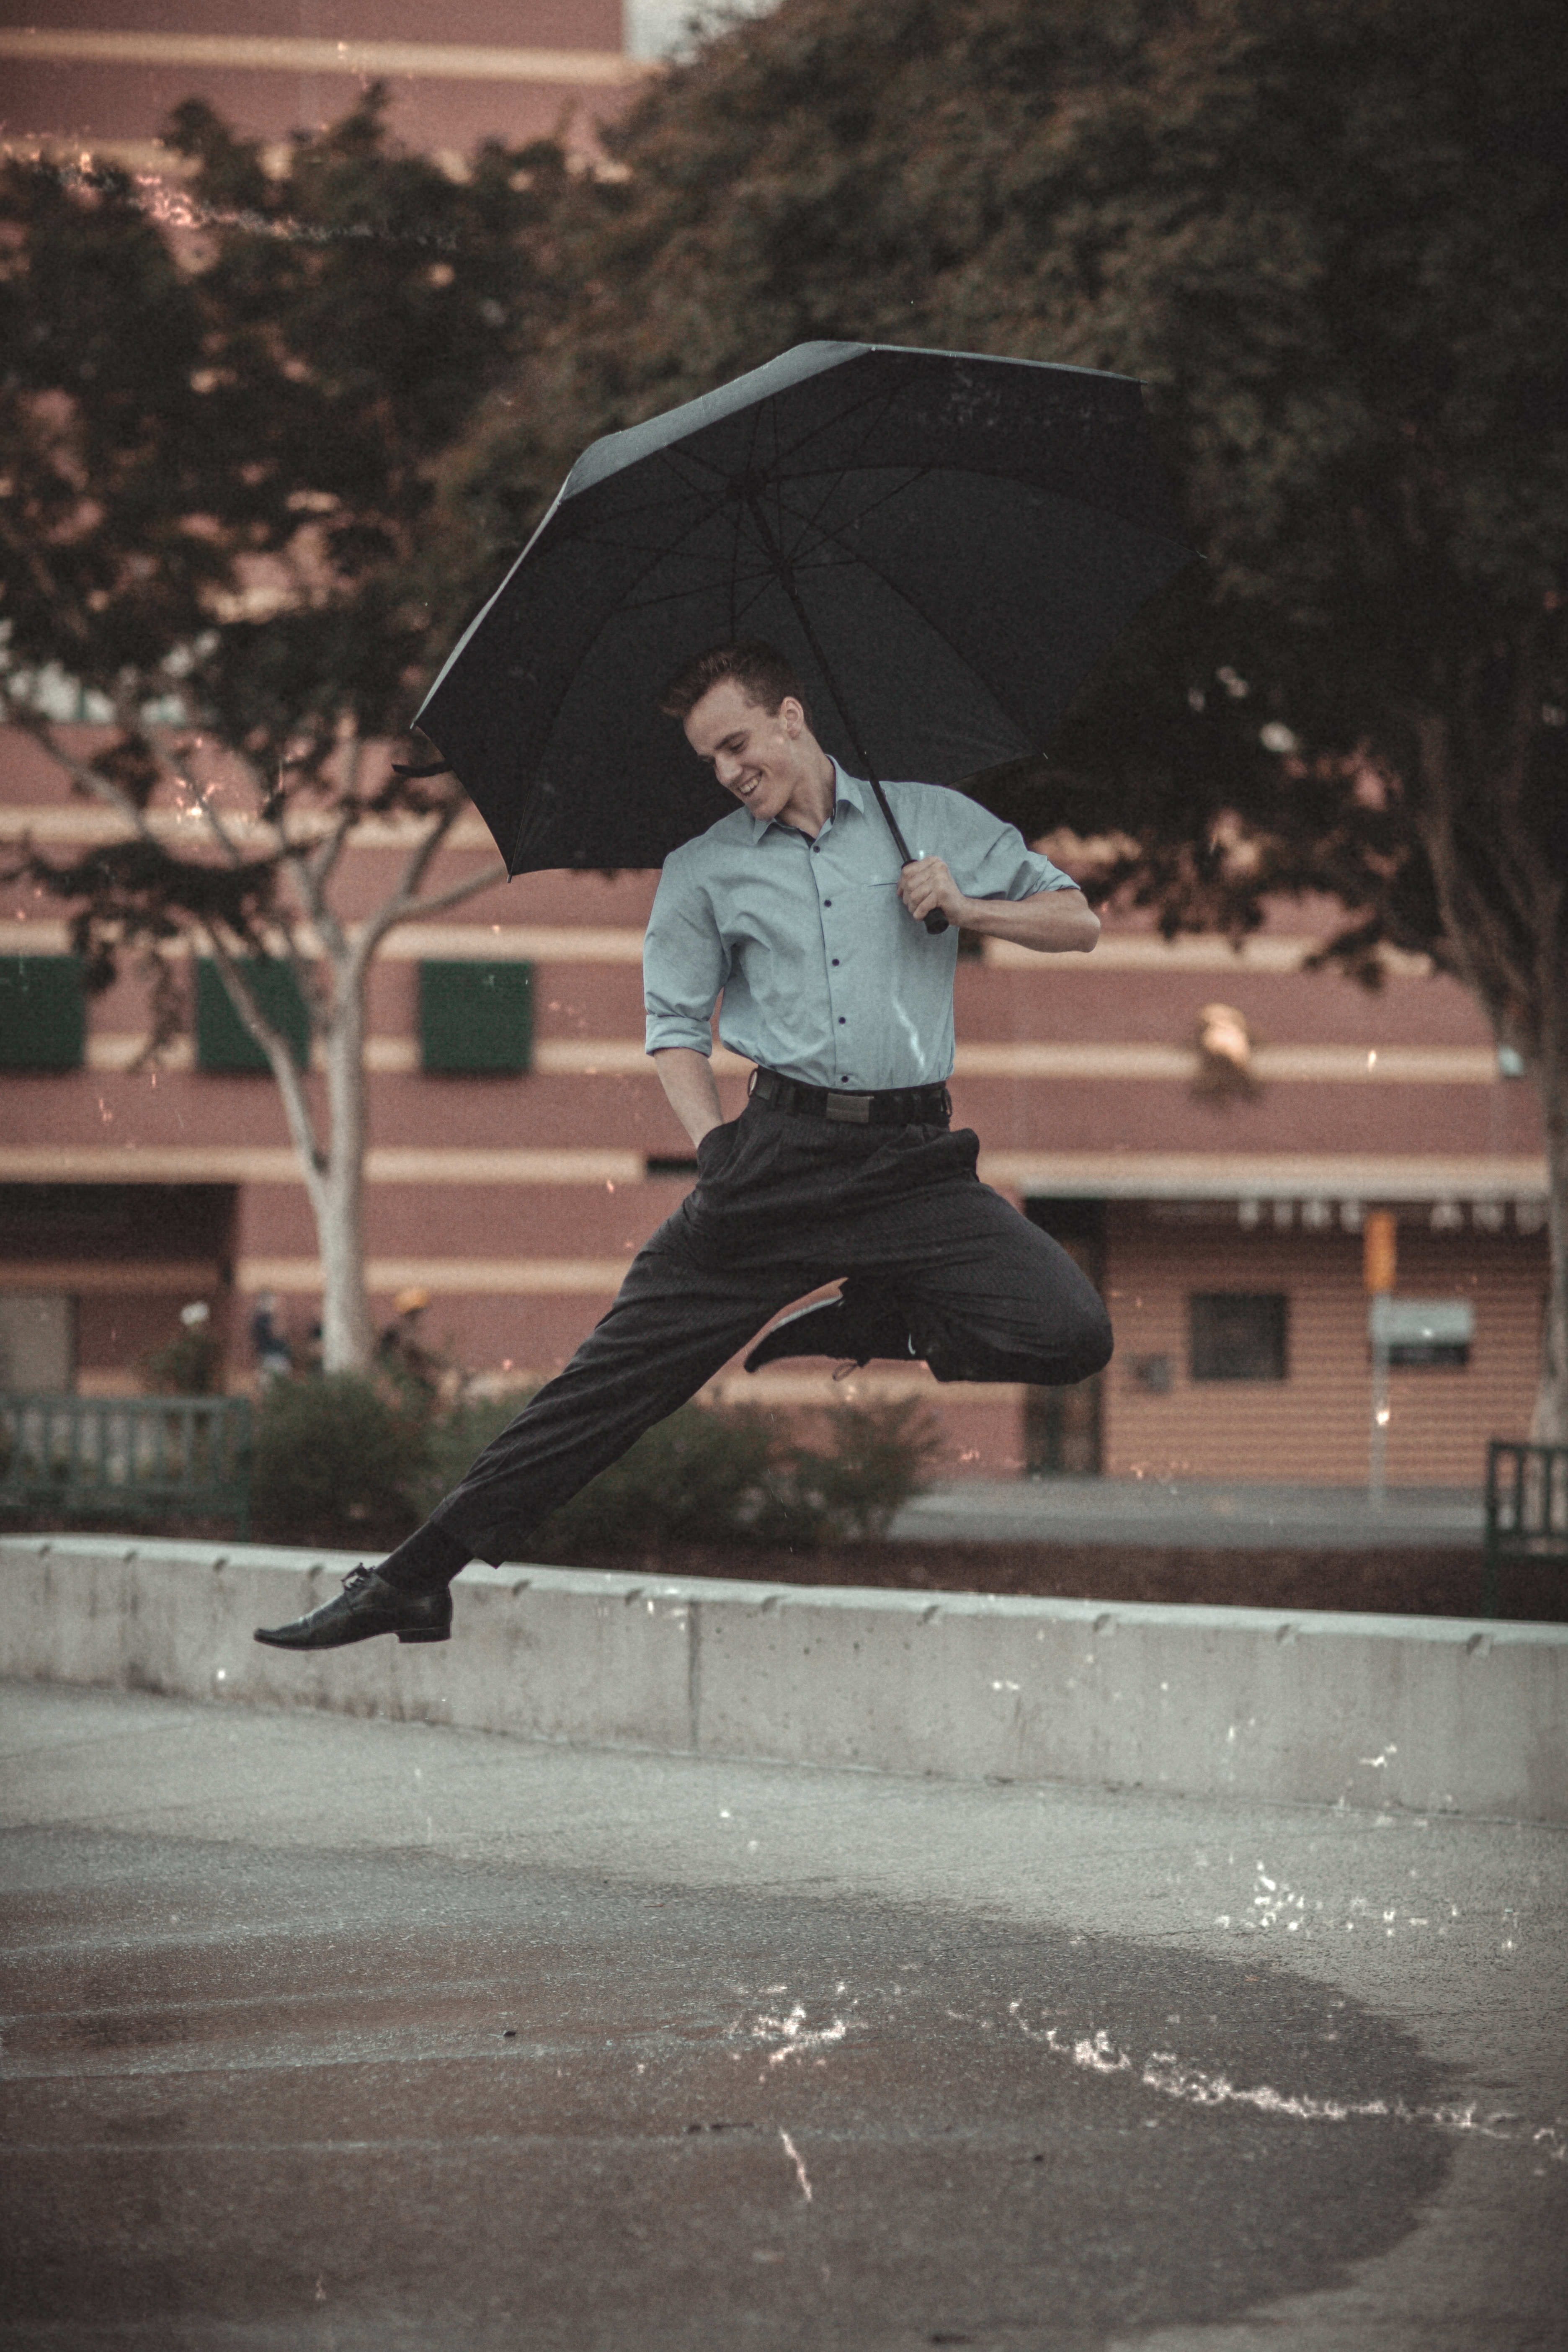 Man leaping while holding an umbrella.